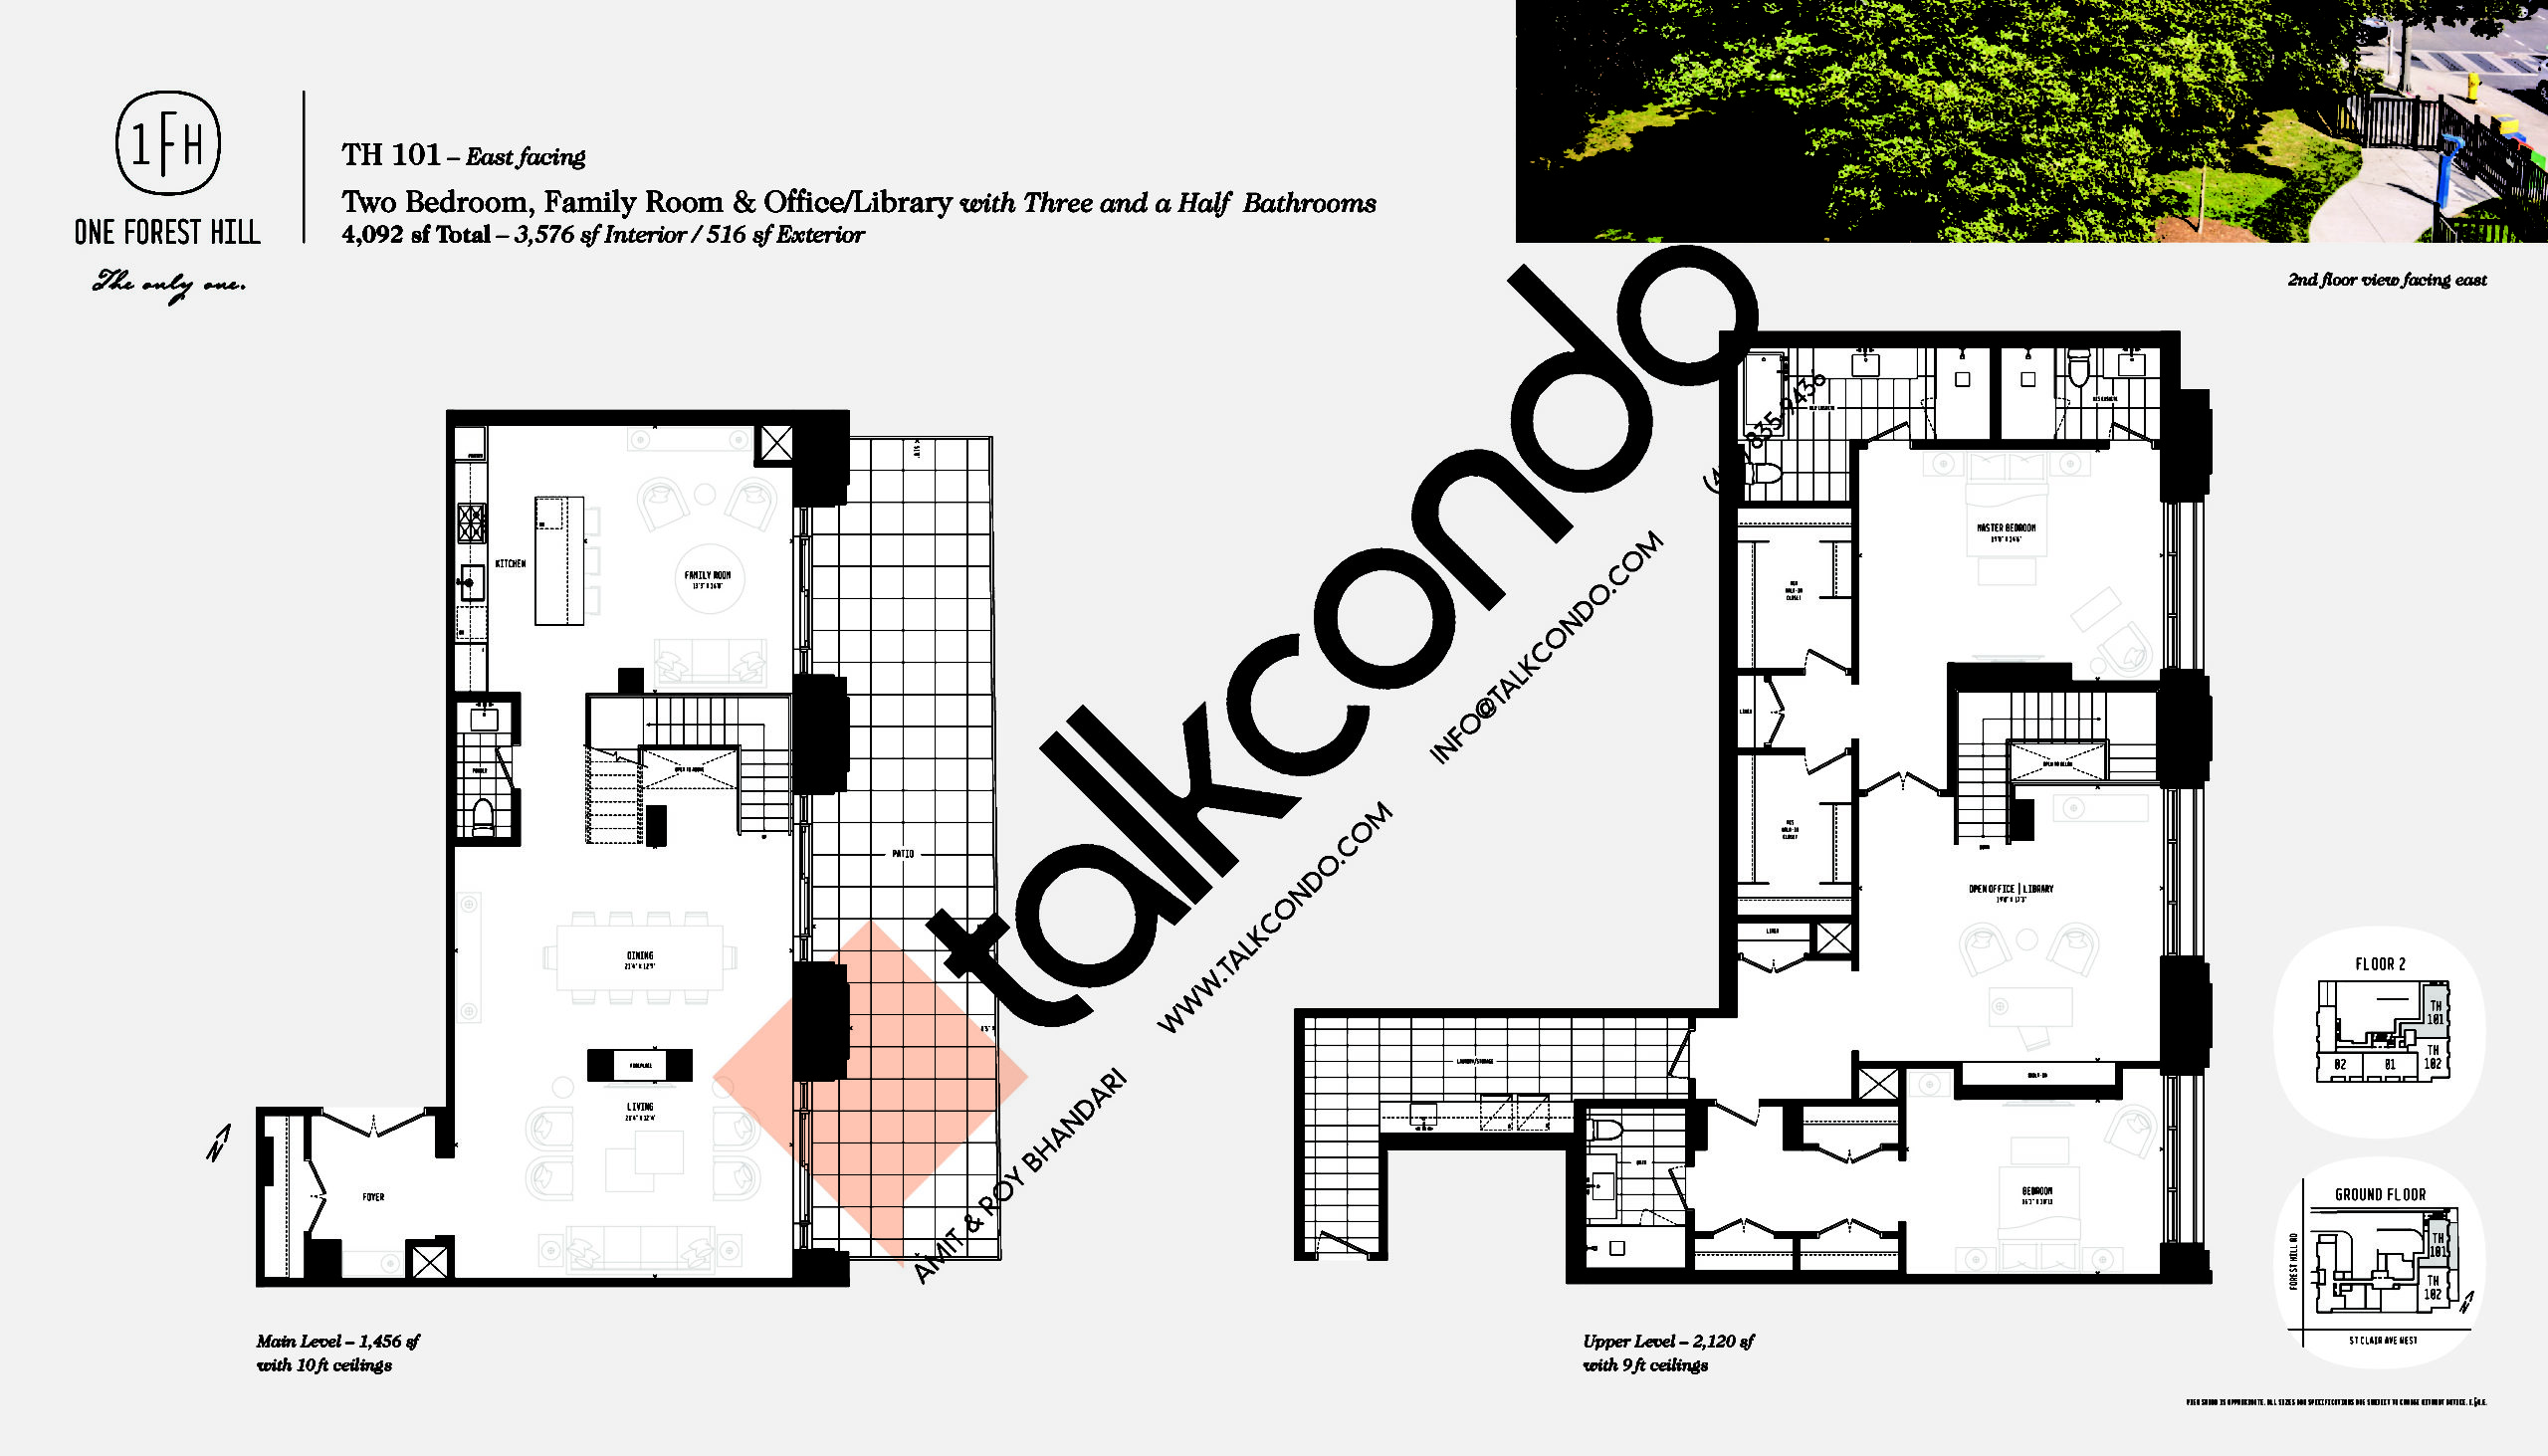 TH 101 Floor Plan at One Forest Hill Condos - 3576 sq.ft